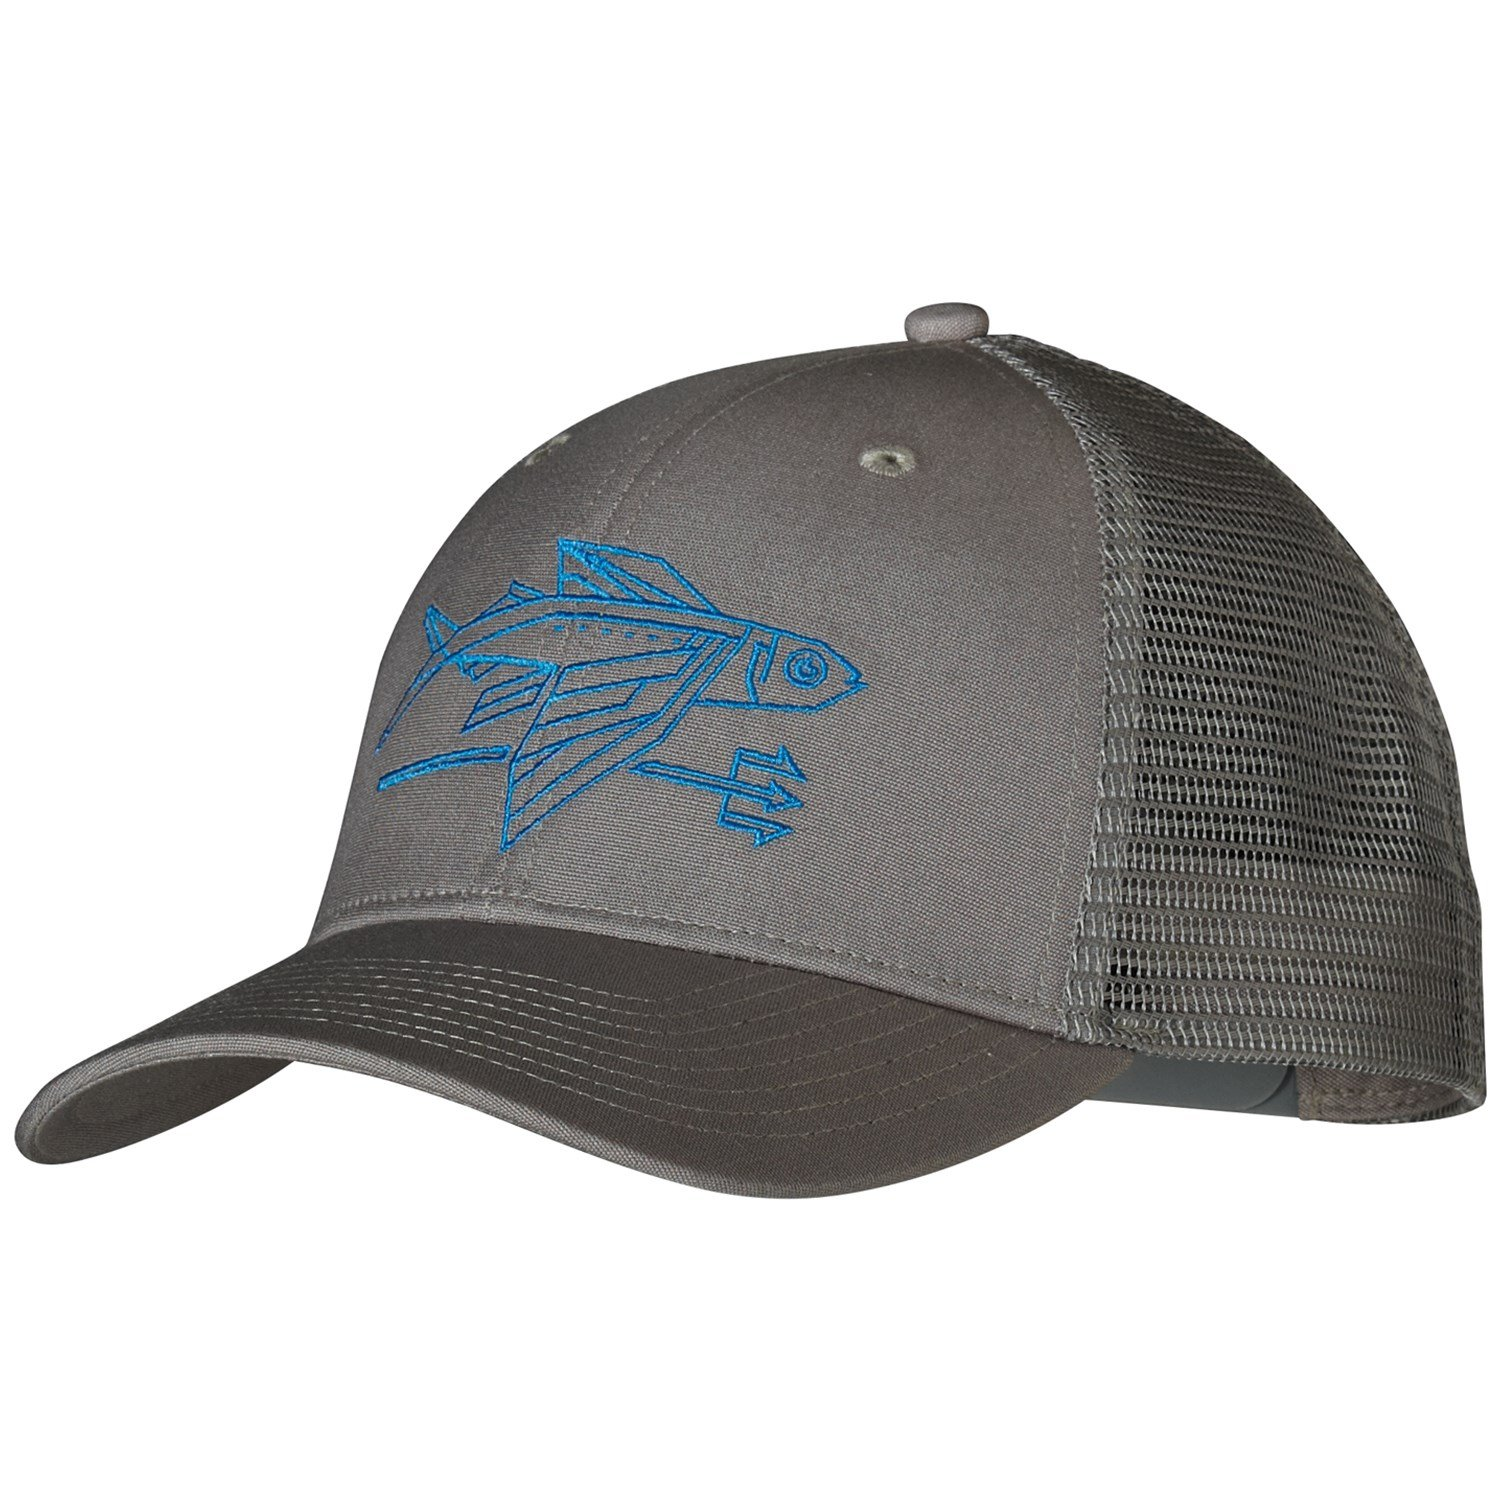 53175878b54ba Patagonia Geodesic Flying Fish Trucker Hat